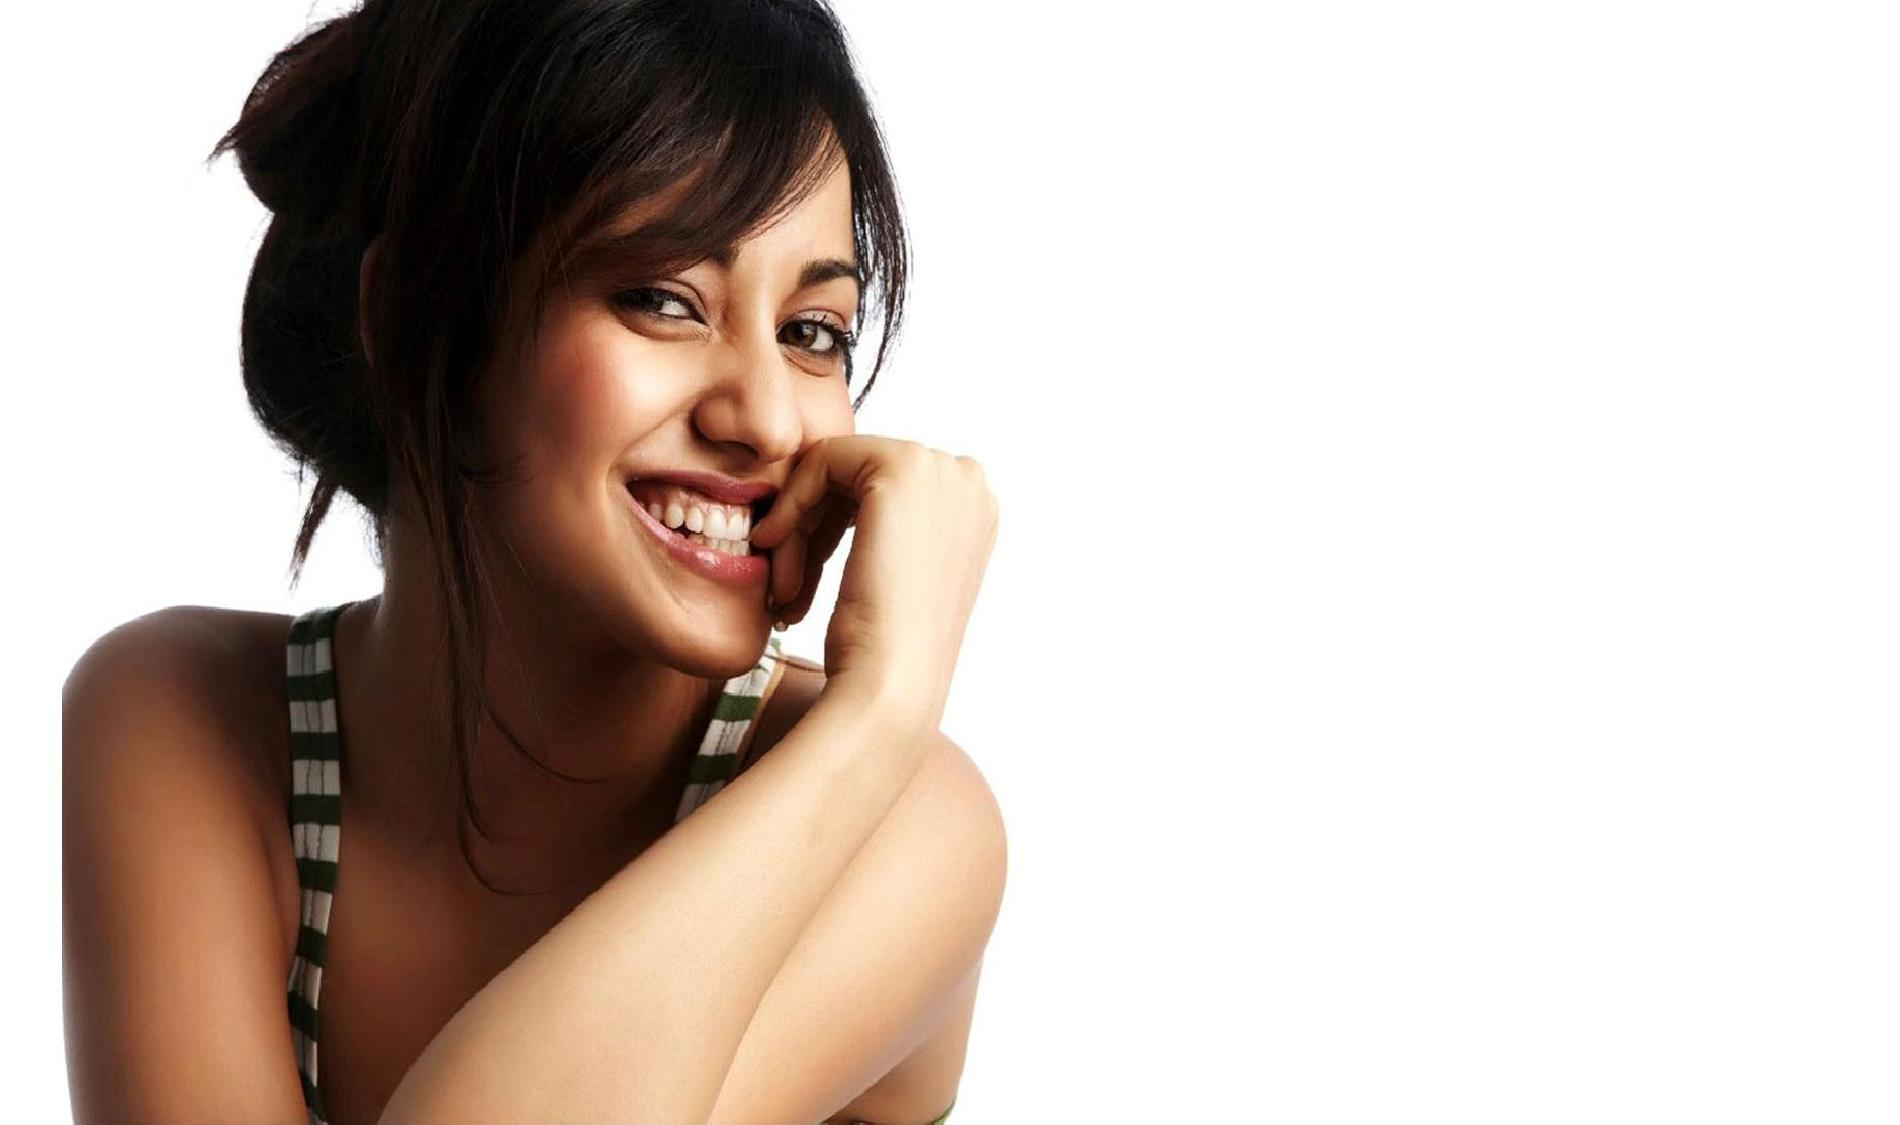 Neha Sharma Wallpapers High Resolution And Quality Download